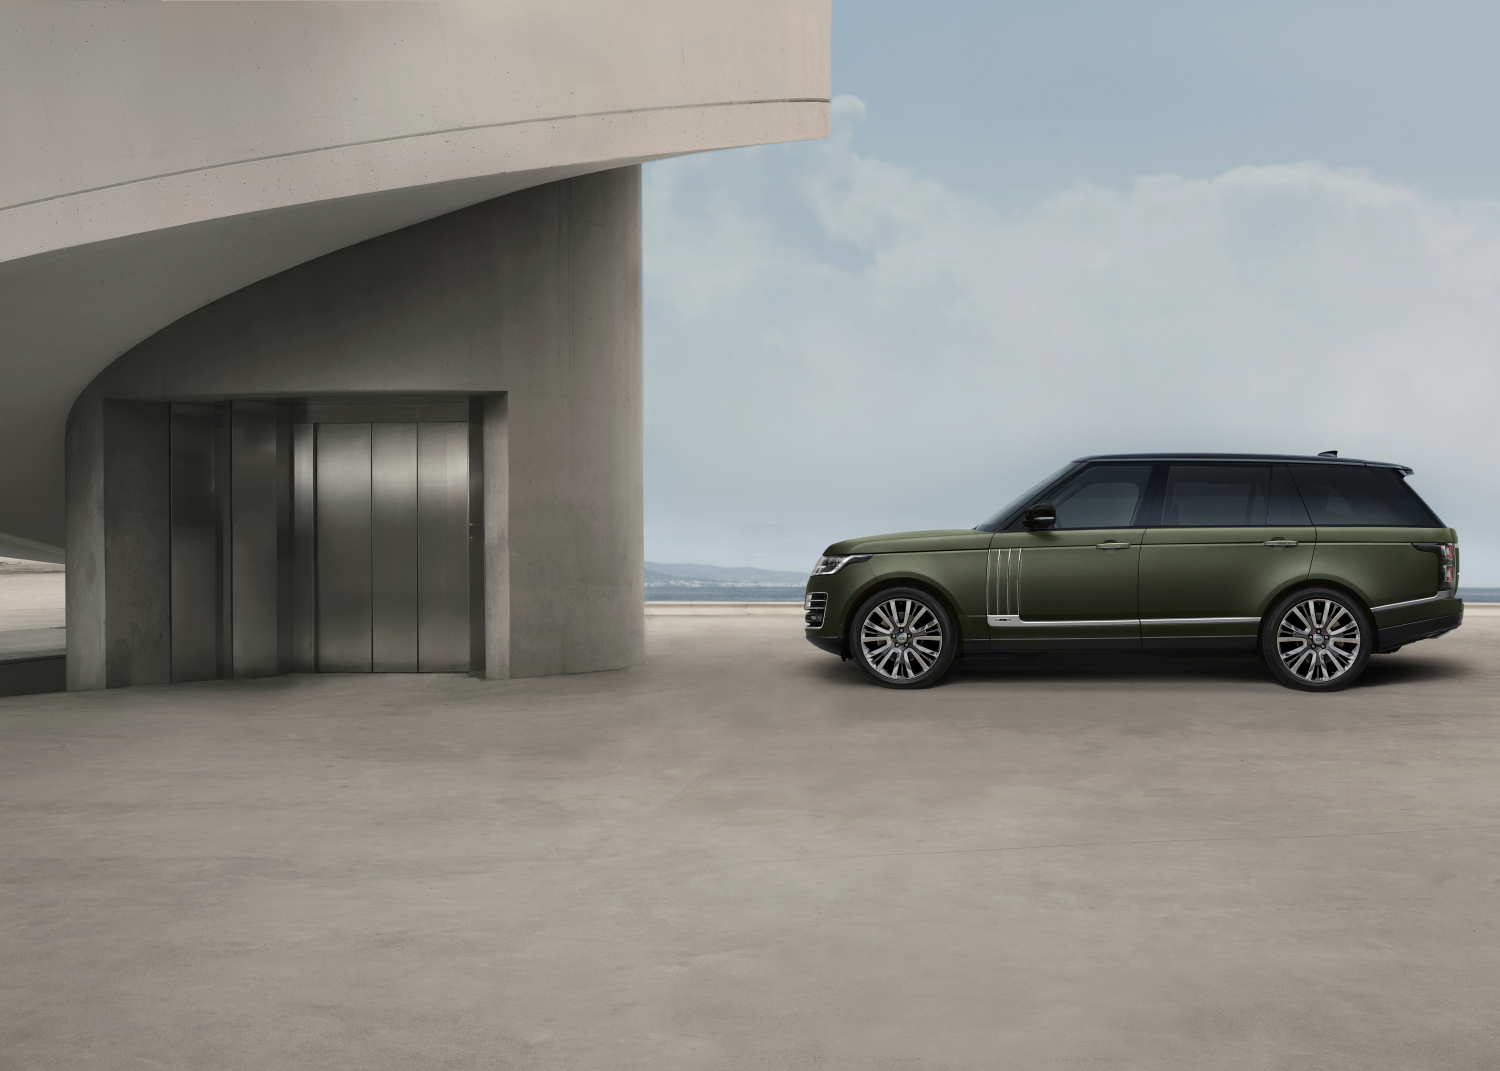 Ultimate Range Rover: Sv Bespoke Introduces Exclusive New Editions - Image 3